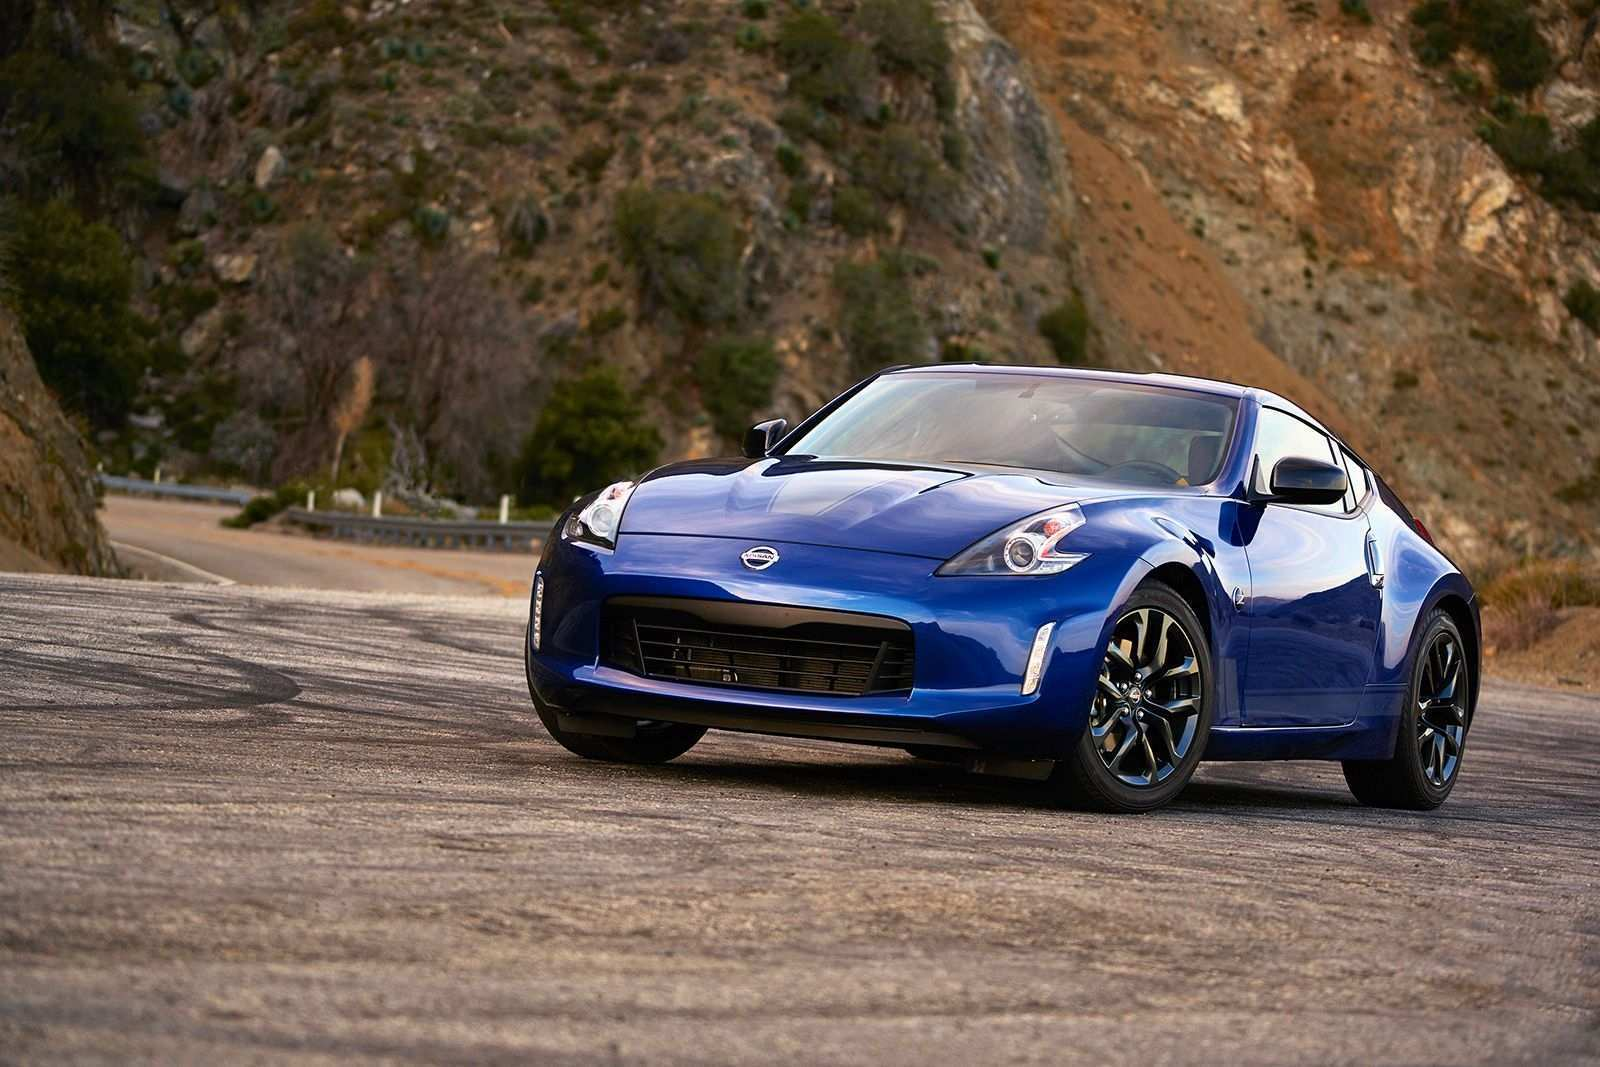 44 All New 2019 Nissan Z35 Review Images